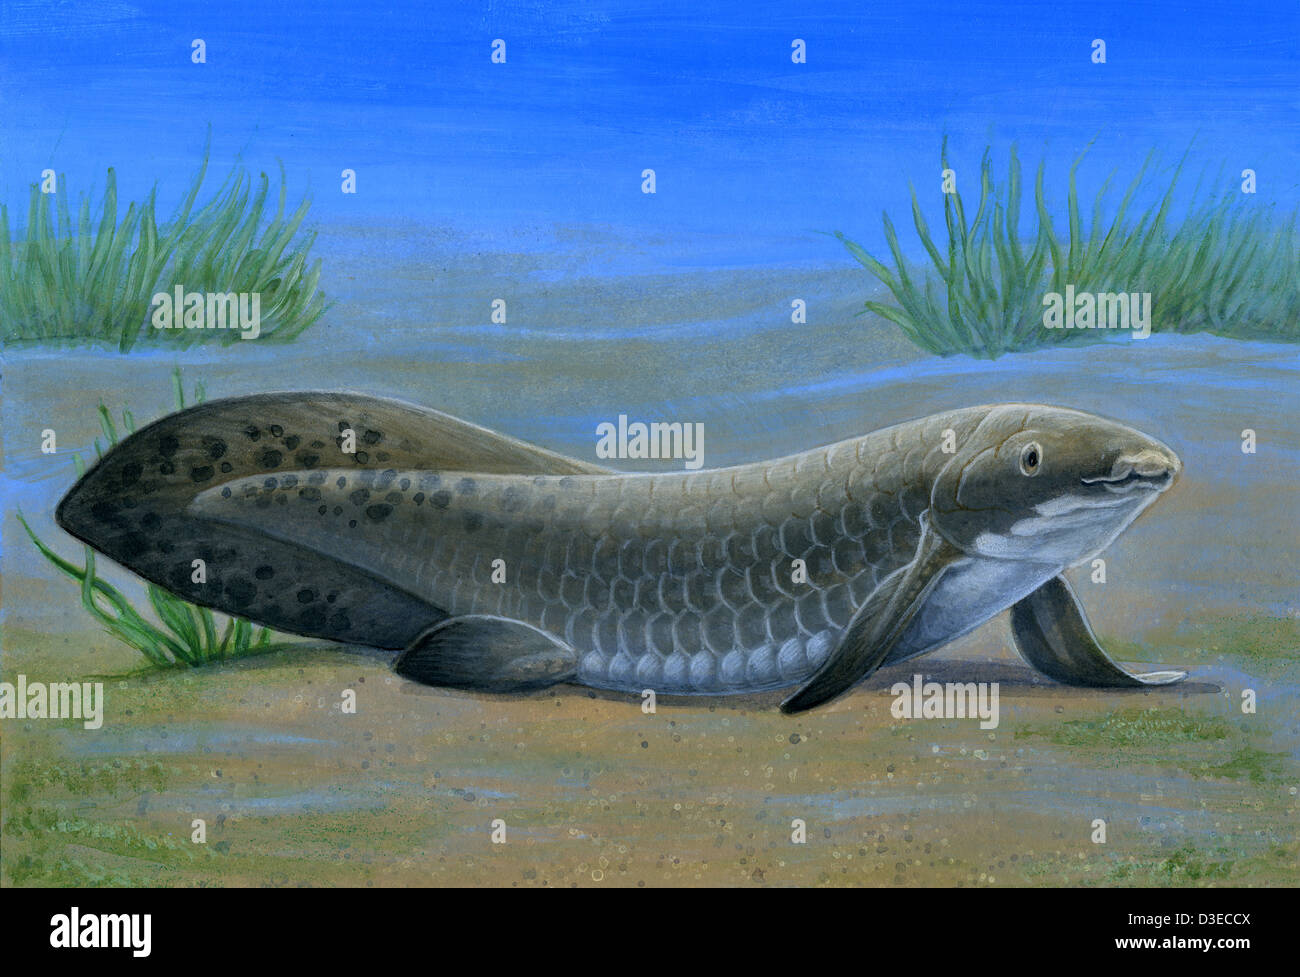 Ceratodus, an ancient lungfish that lived during the Triassic period. - Stock Image